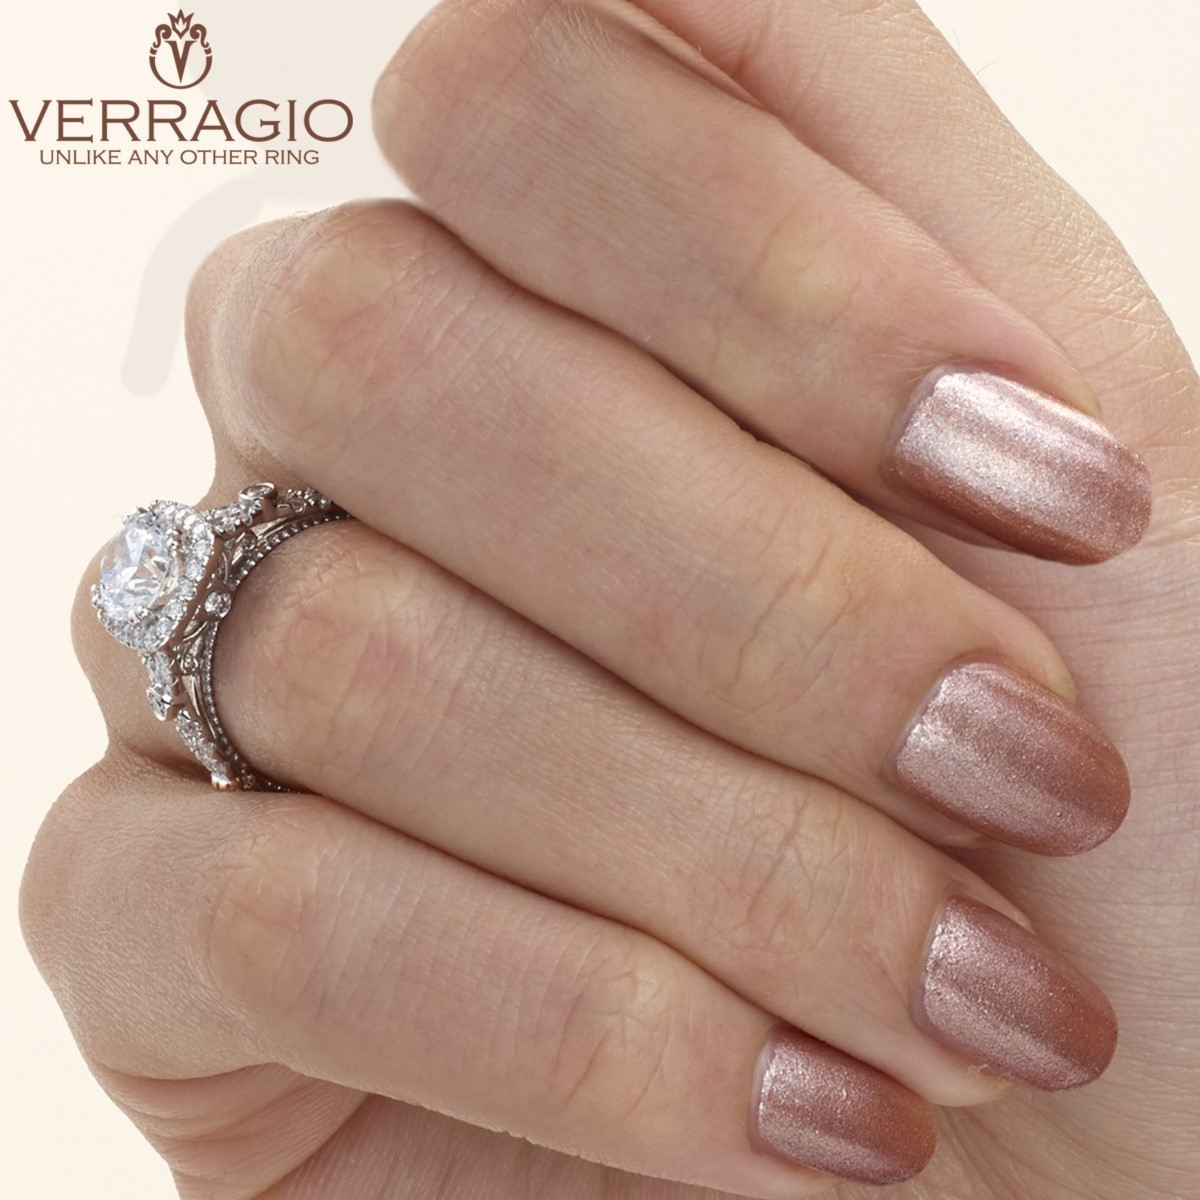 Verragio Parisian-DL109CU 14 Karat Engagement Ring Alternative View 7